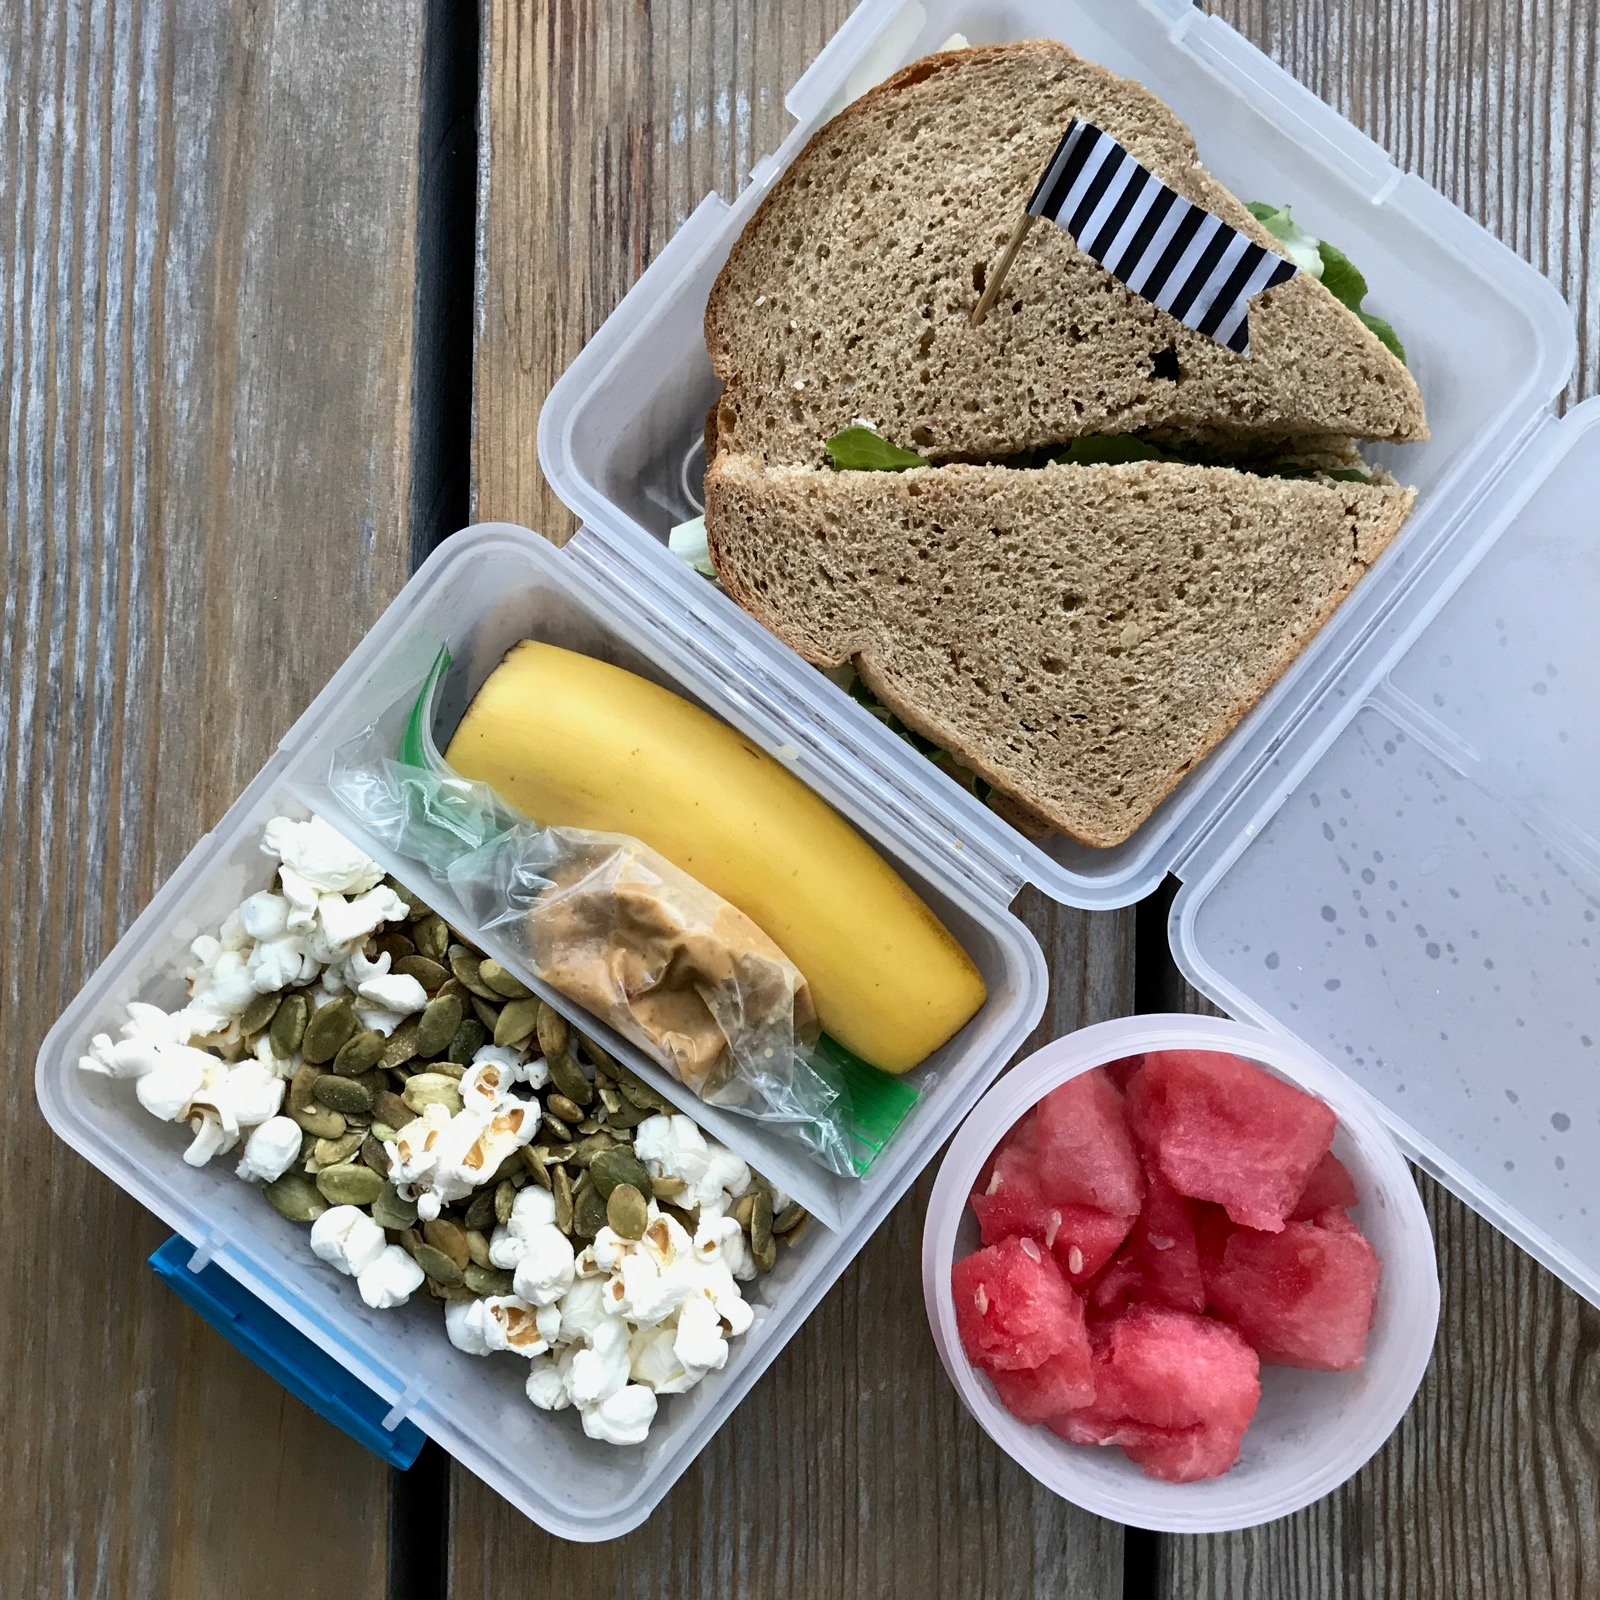 Packed school lunch of Hummus, cheese and lettuce sandwich Banana and PB Popcorn and roasted pumpkin seed mix Watermelon